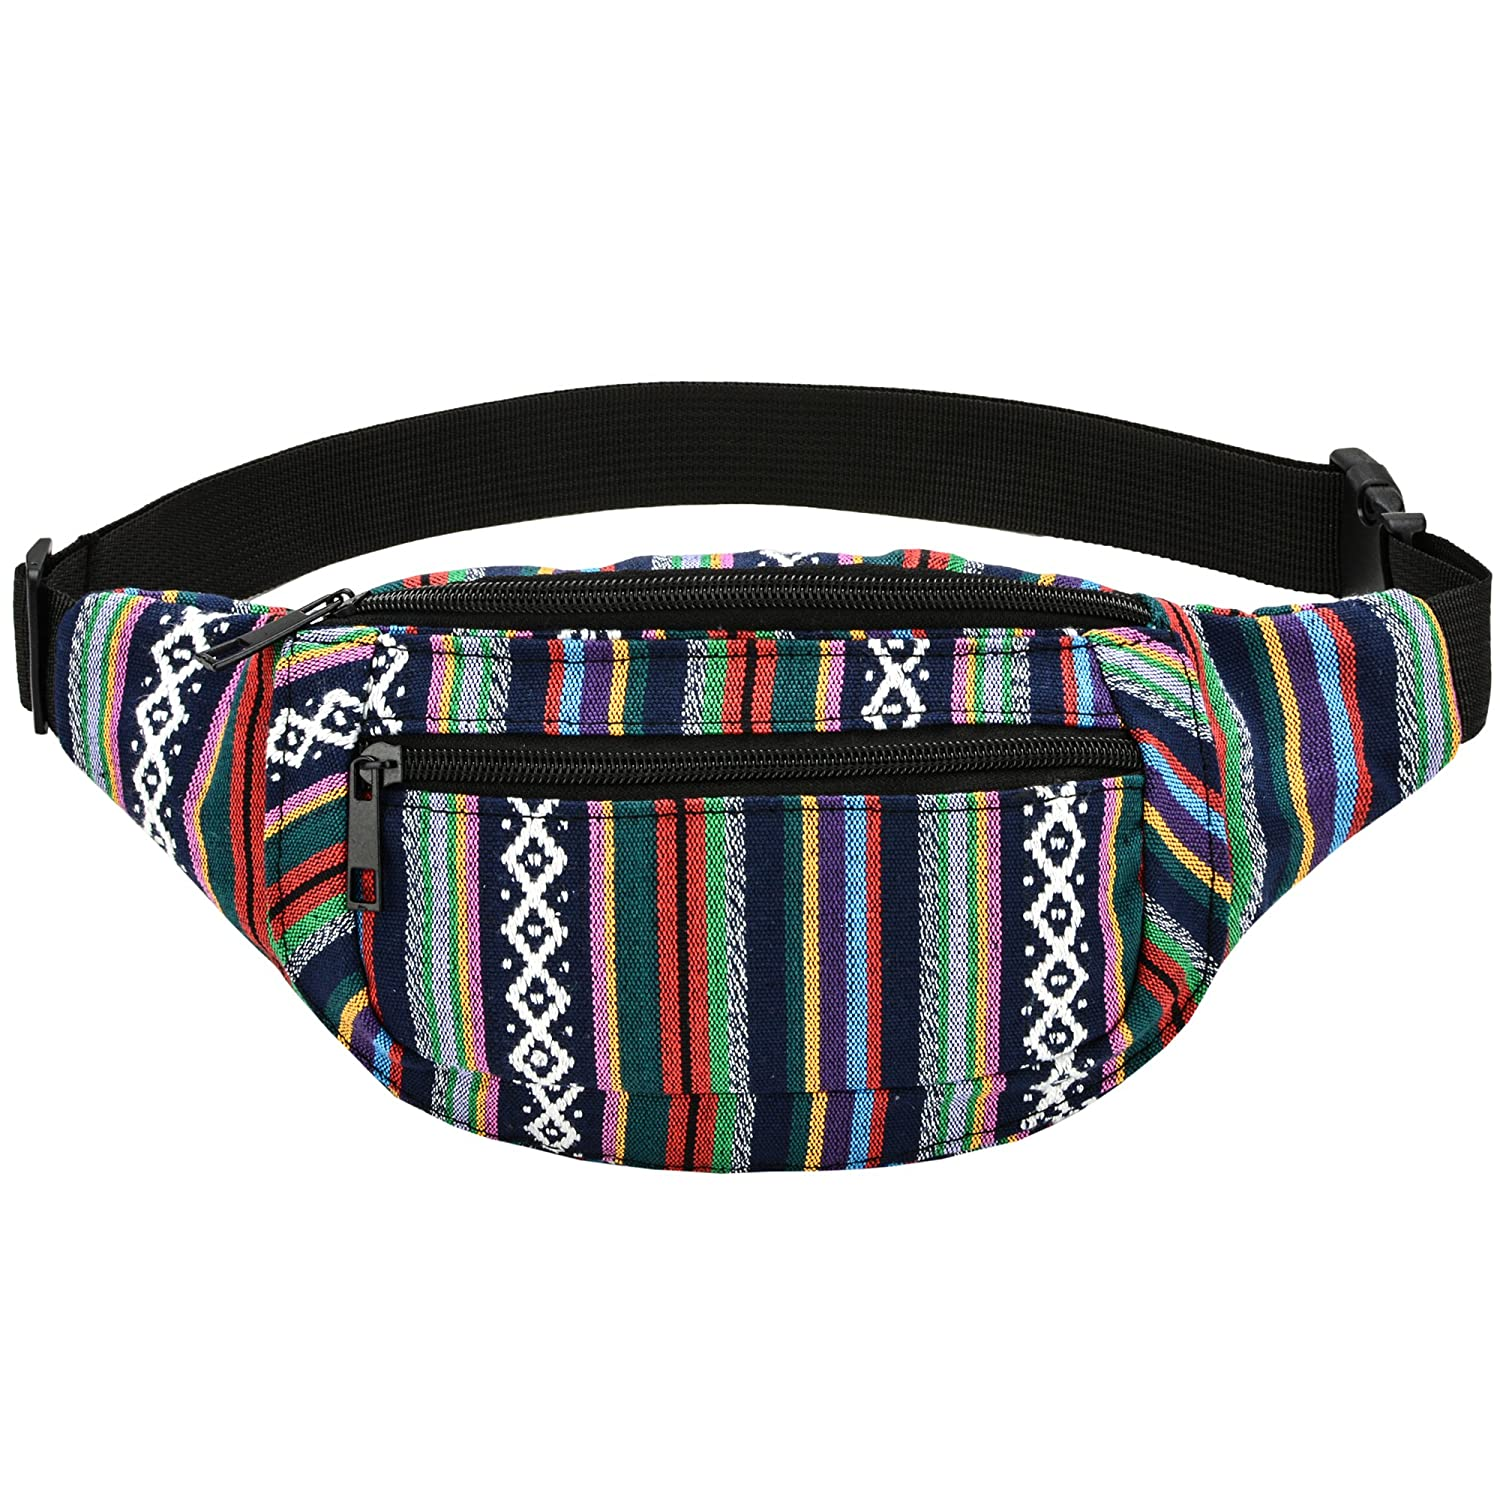 Kayhoma Boho Fanny Pack Stripe Festival Rave Retro Vintage Flat Bum Bags Travel Hiking Waist Belt Purse yb009